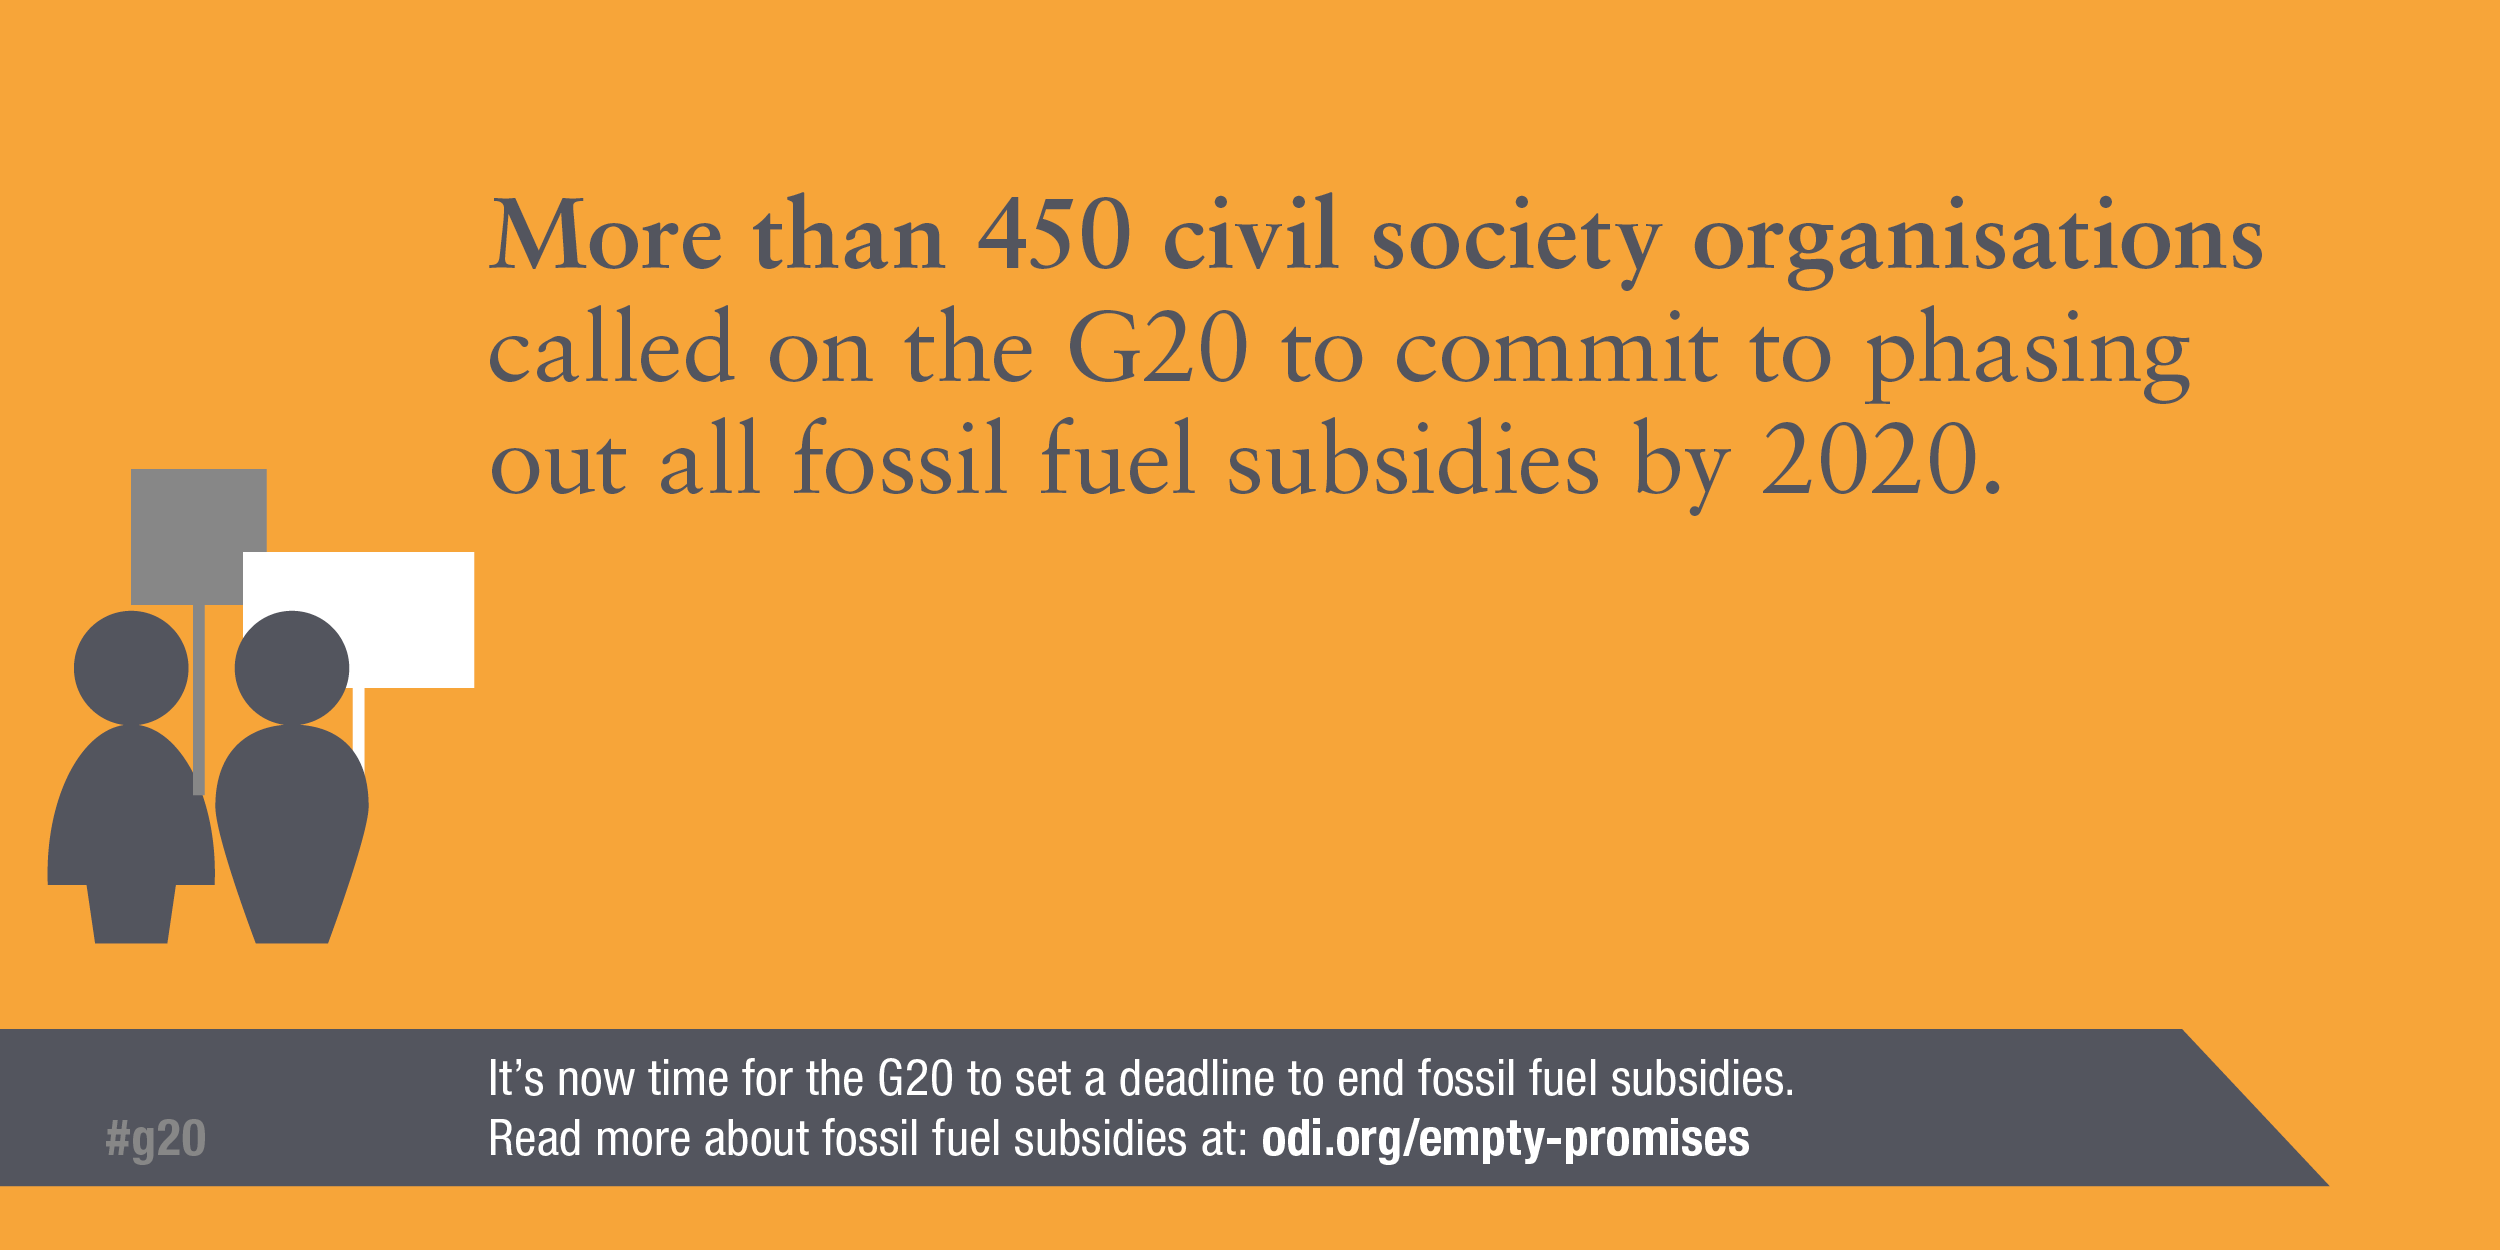 Infographic: More than 450 civil society organisations have called on the G20 to end fossil fuel subsidies by 2020